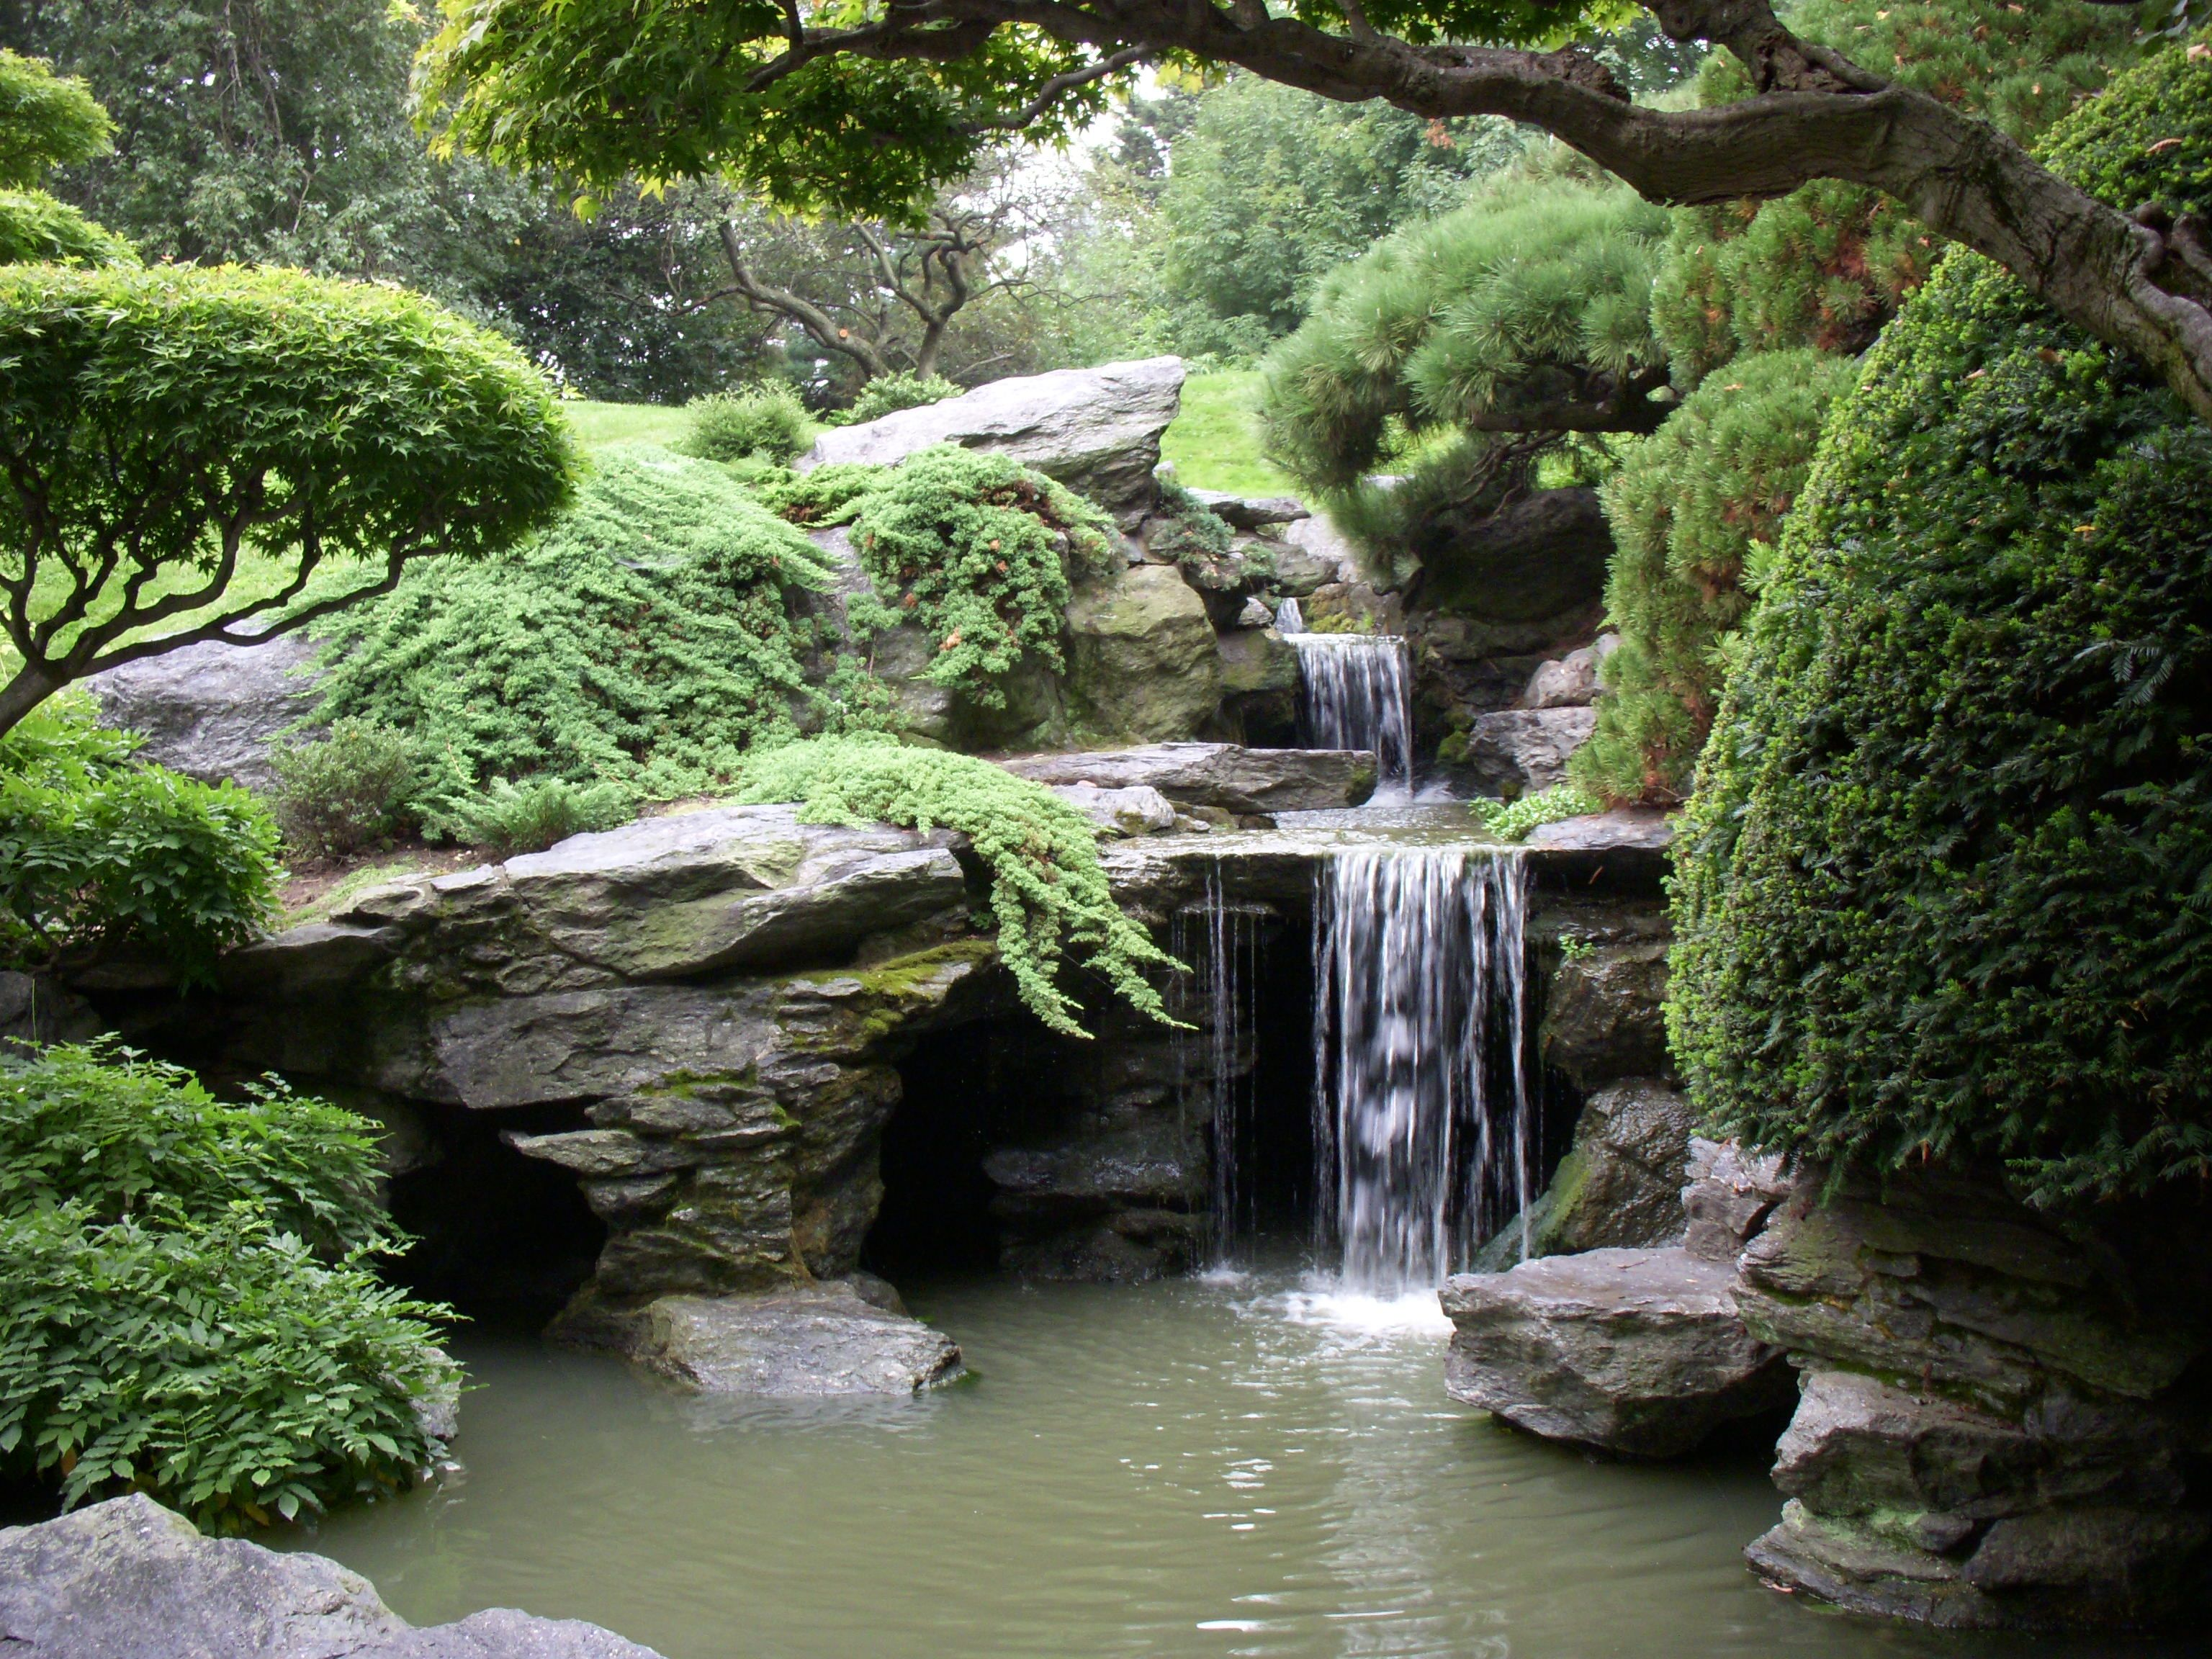 Japanese Hill And Pond Garden North American Japanese Garden Association New York 2015 Japanese Garden Japanese Garden Design Japanese Water Feature